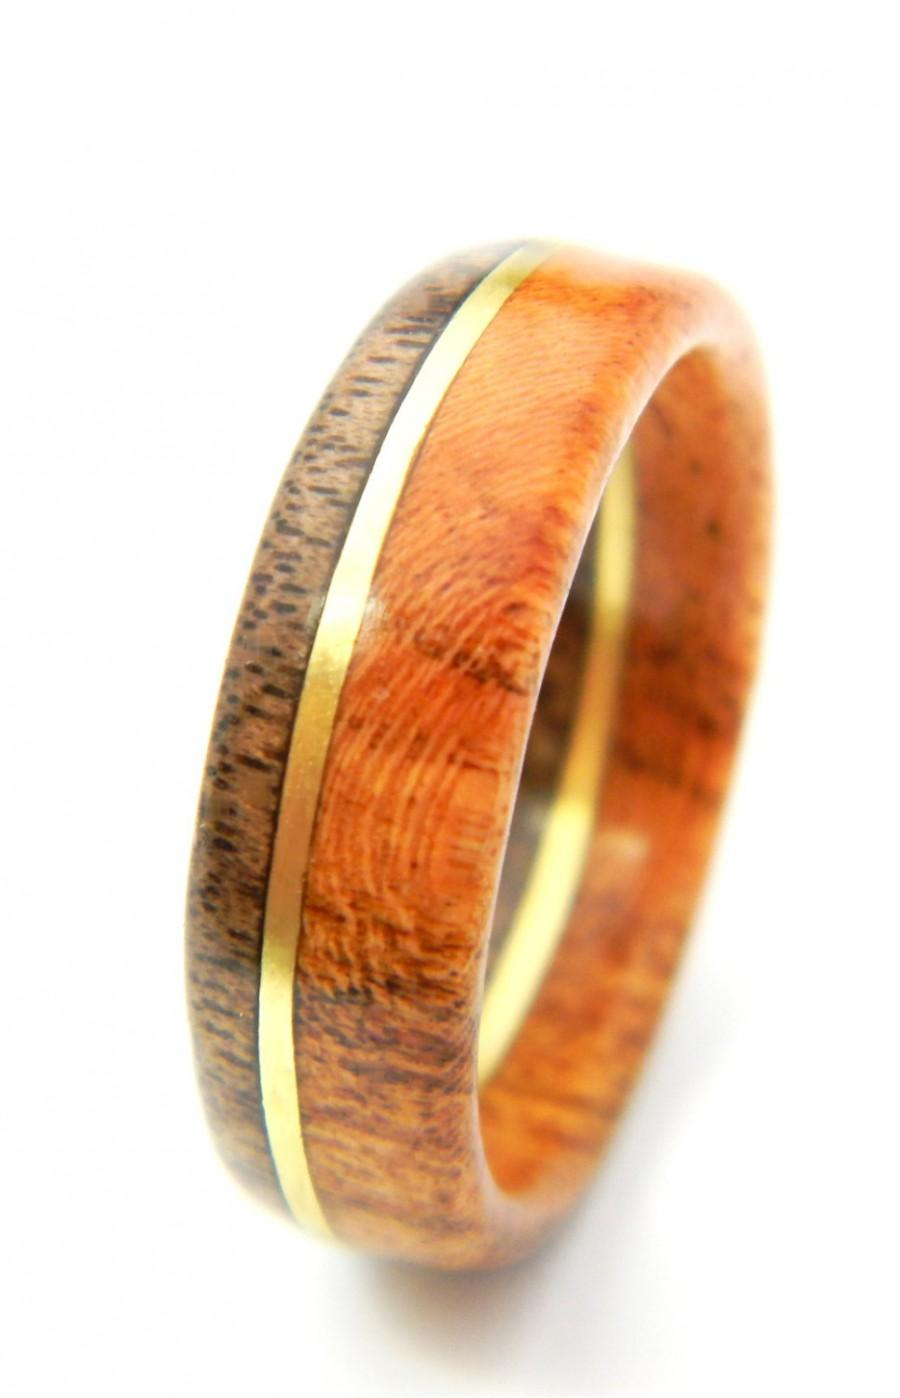 Mariage - Ready to Ship - Size 13 - Unique Walnut and Cherry Wood Engagement Ring, Jewelry, Ring, Wood Jewelry, Weddings, Wedding Band, Engagement